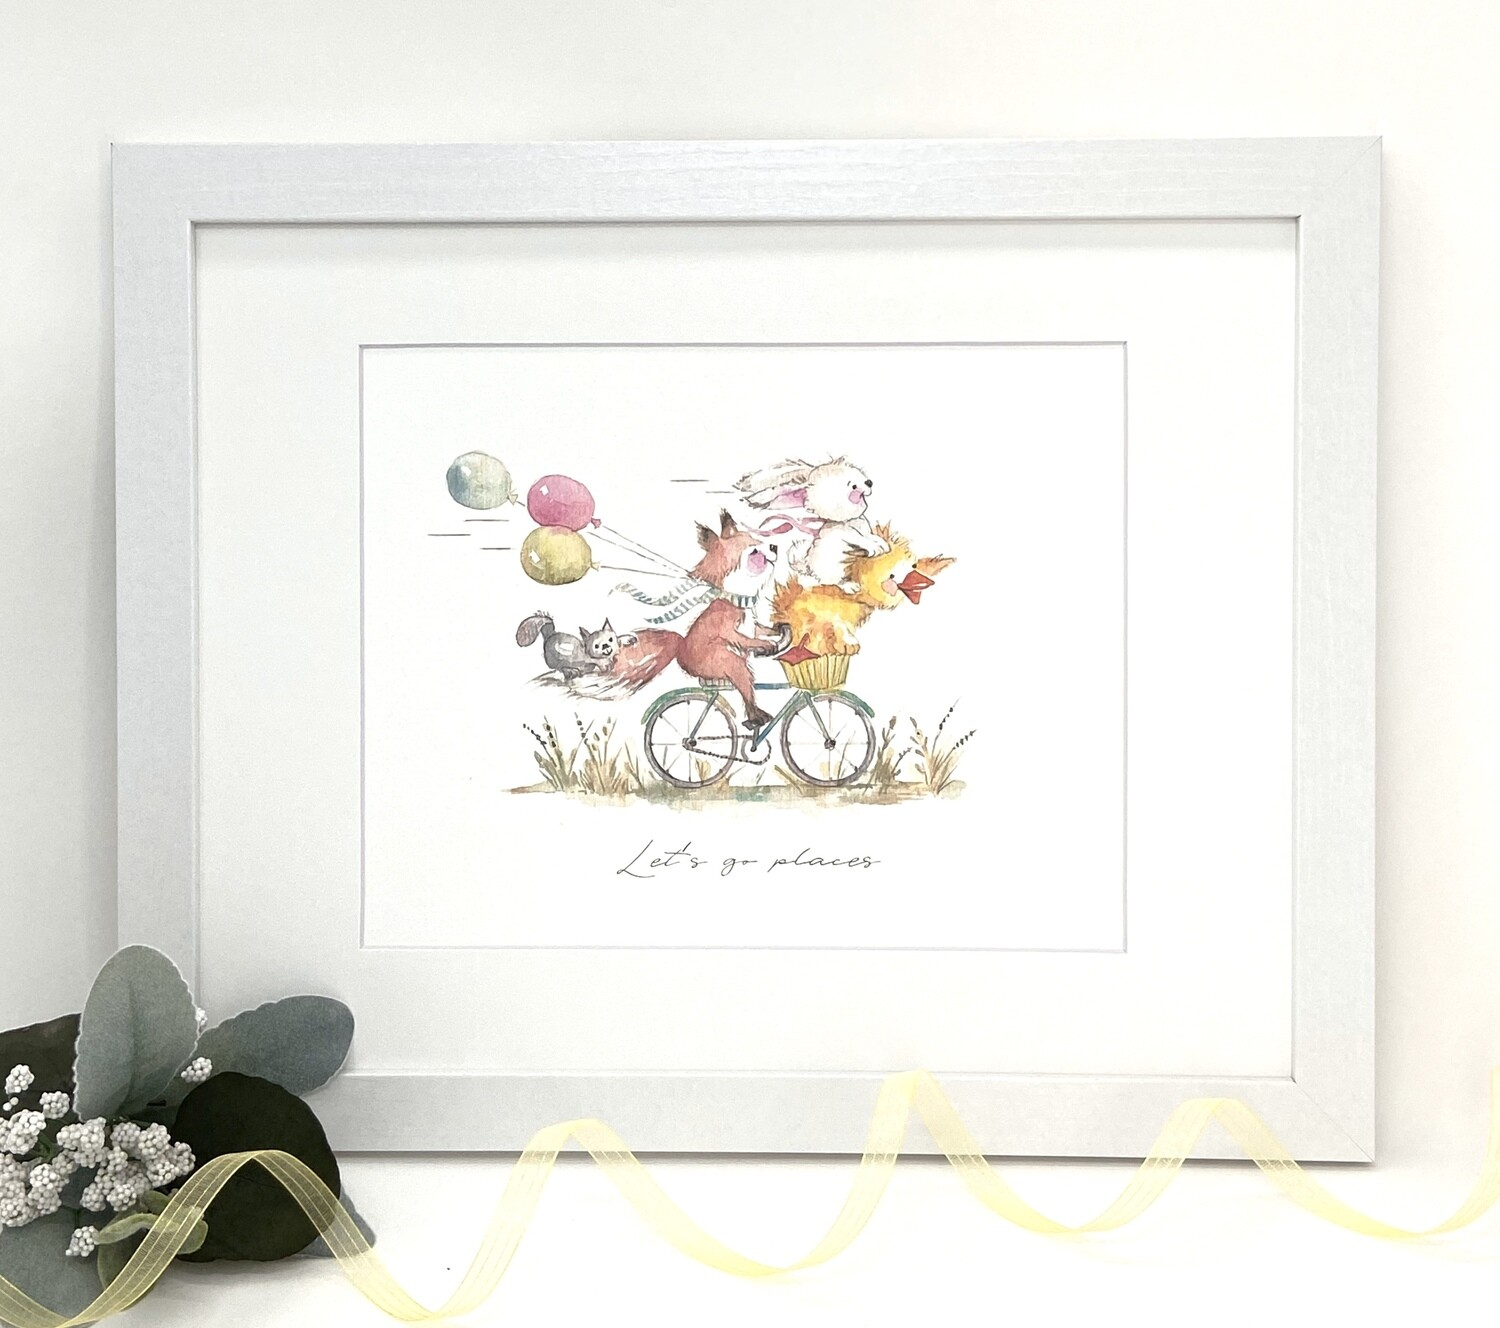 Nursery  and Children's Art Print - Framed and Signed -Let's Go Places